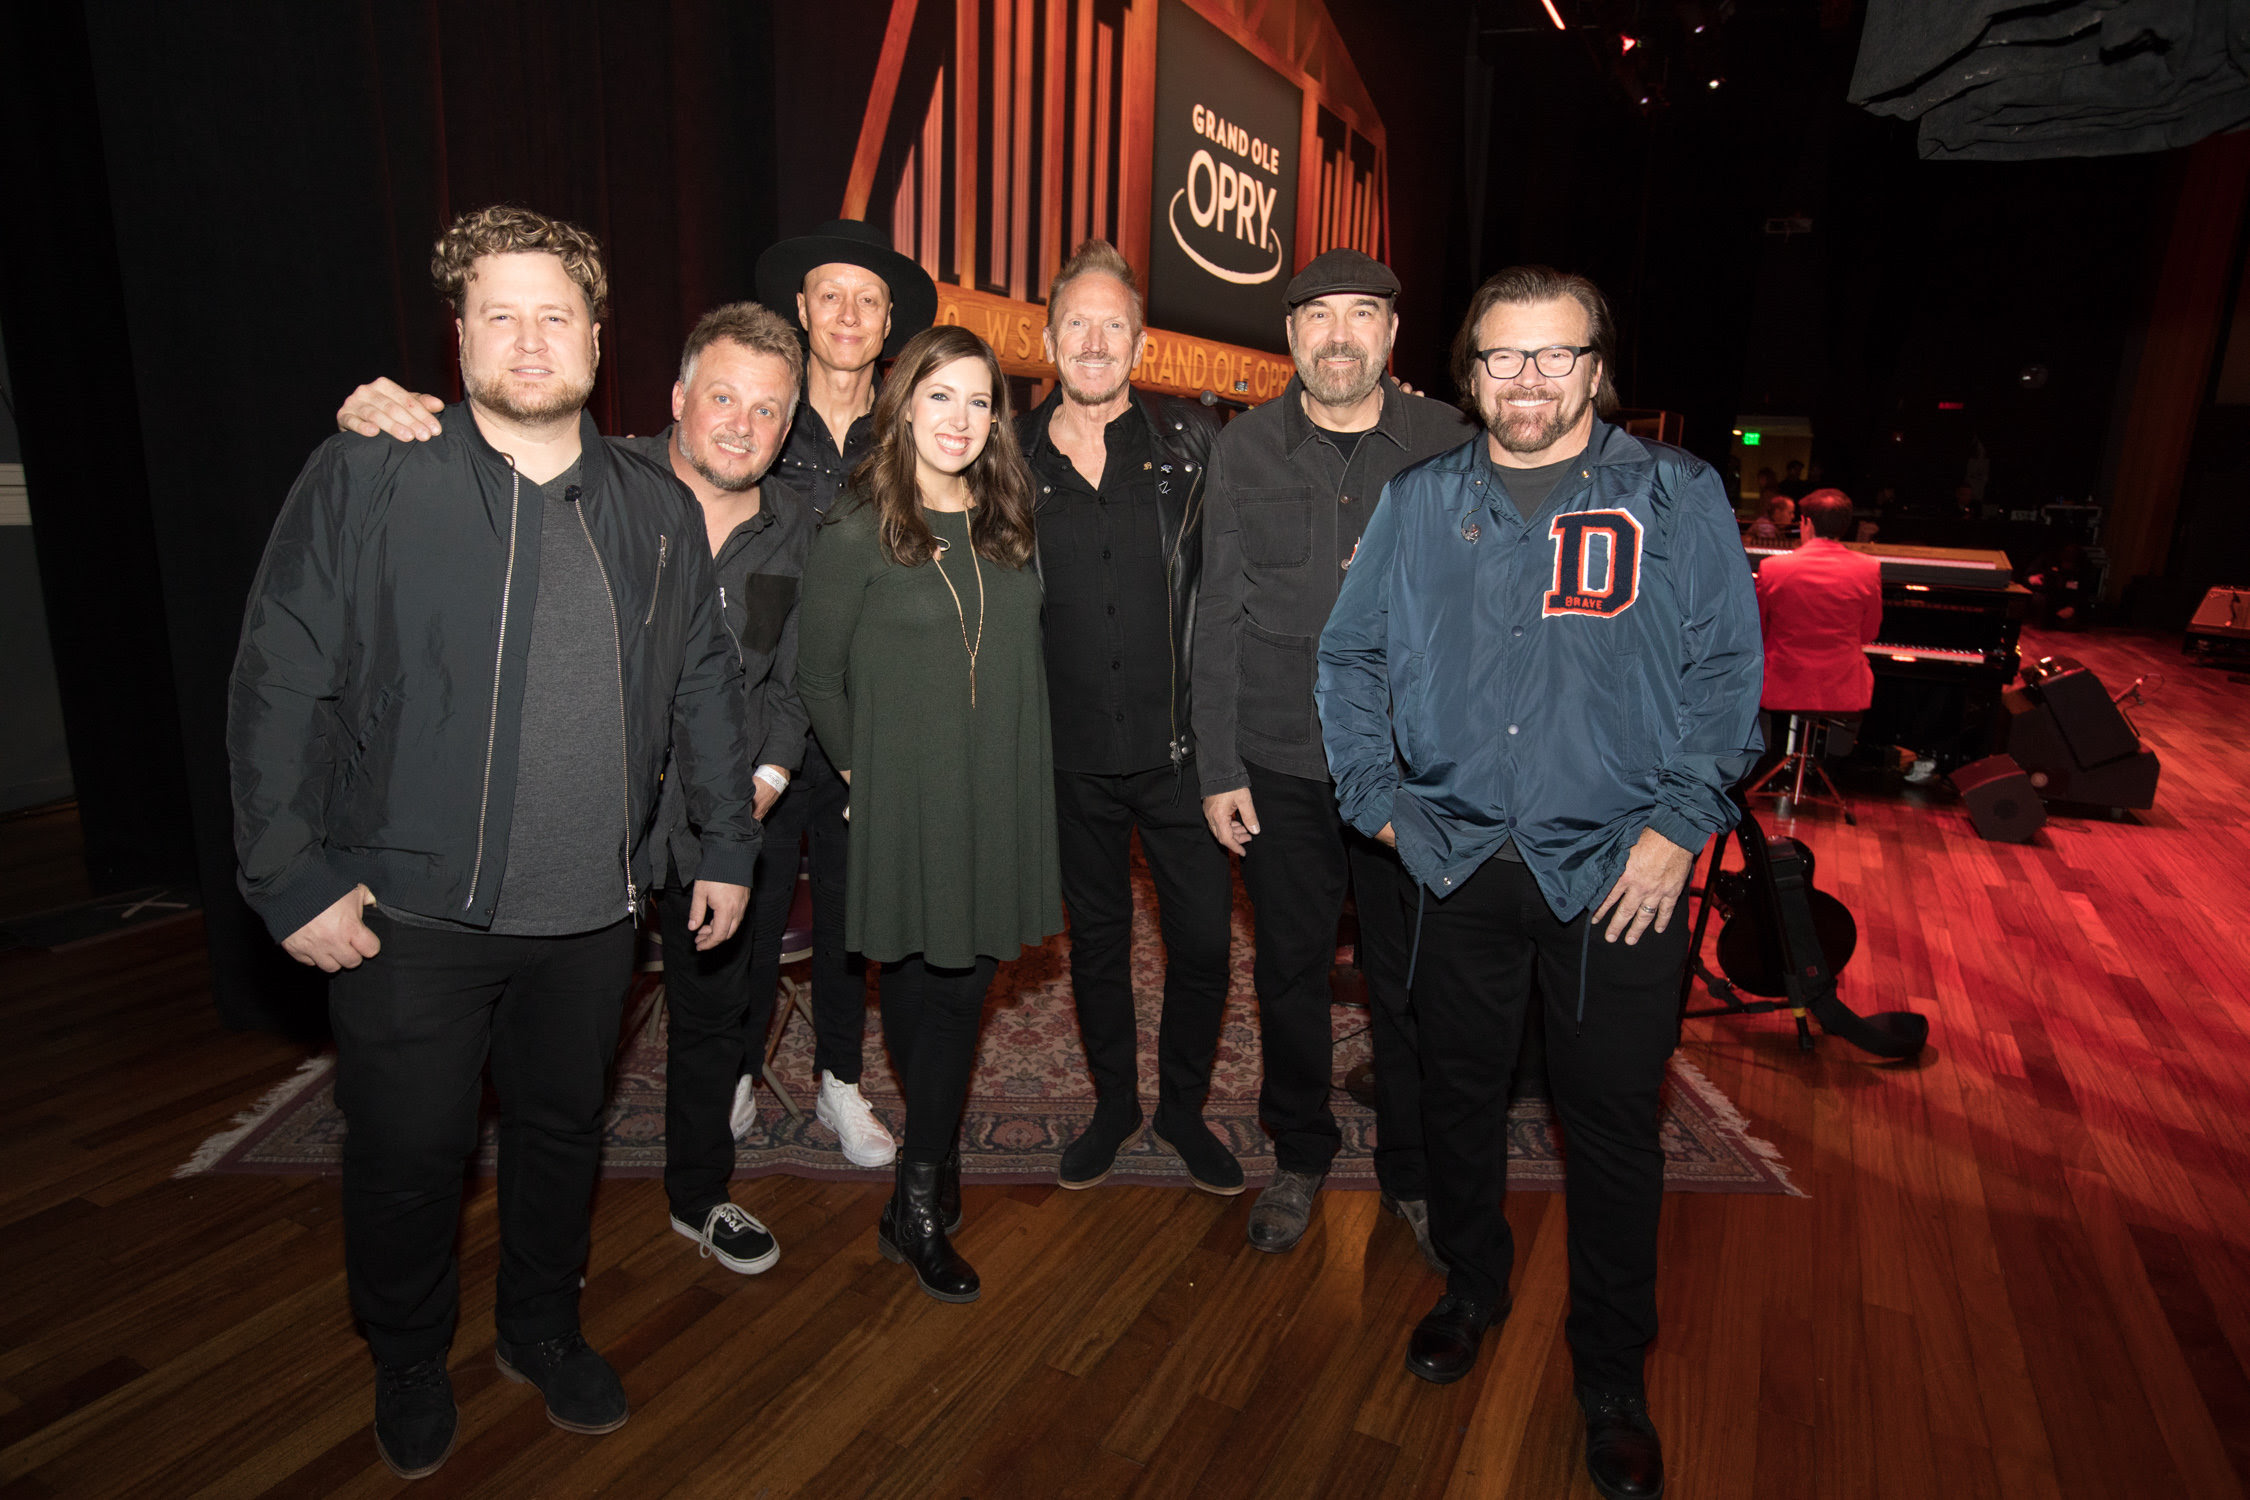 Pictured (l-r) on the Grand Ole Opry® stage at Nashville's Ryman Auditorium are (l-r) NewSong's Mark Clay, Jack Pumphrey and Rico Thomas; Francesca Battistelli; and NewSong's Eddie Carswell, Billy Goodwin and Russ Lee. (photo: Chris Hollo for the Grand Ole Opry)